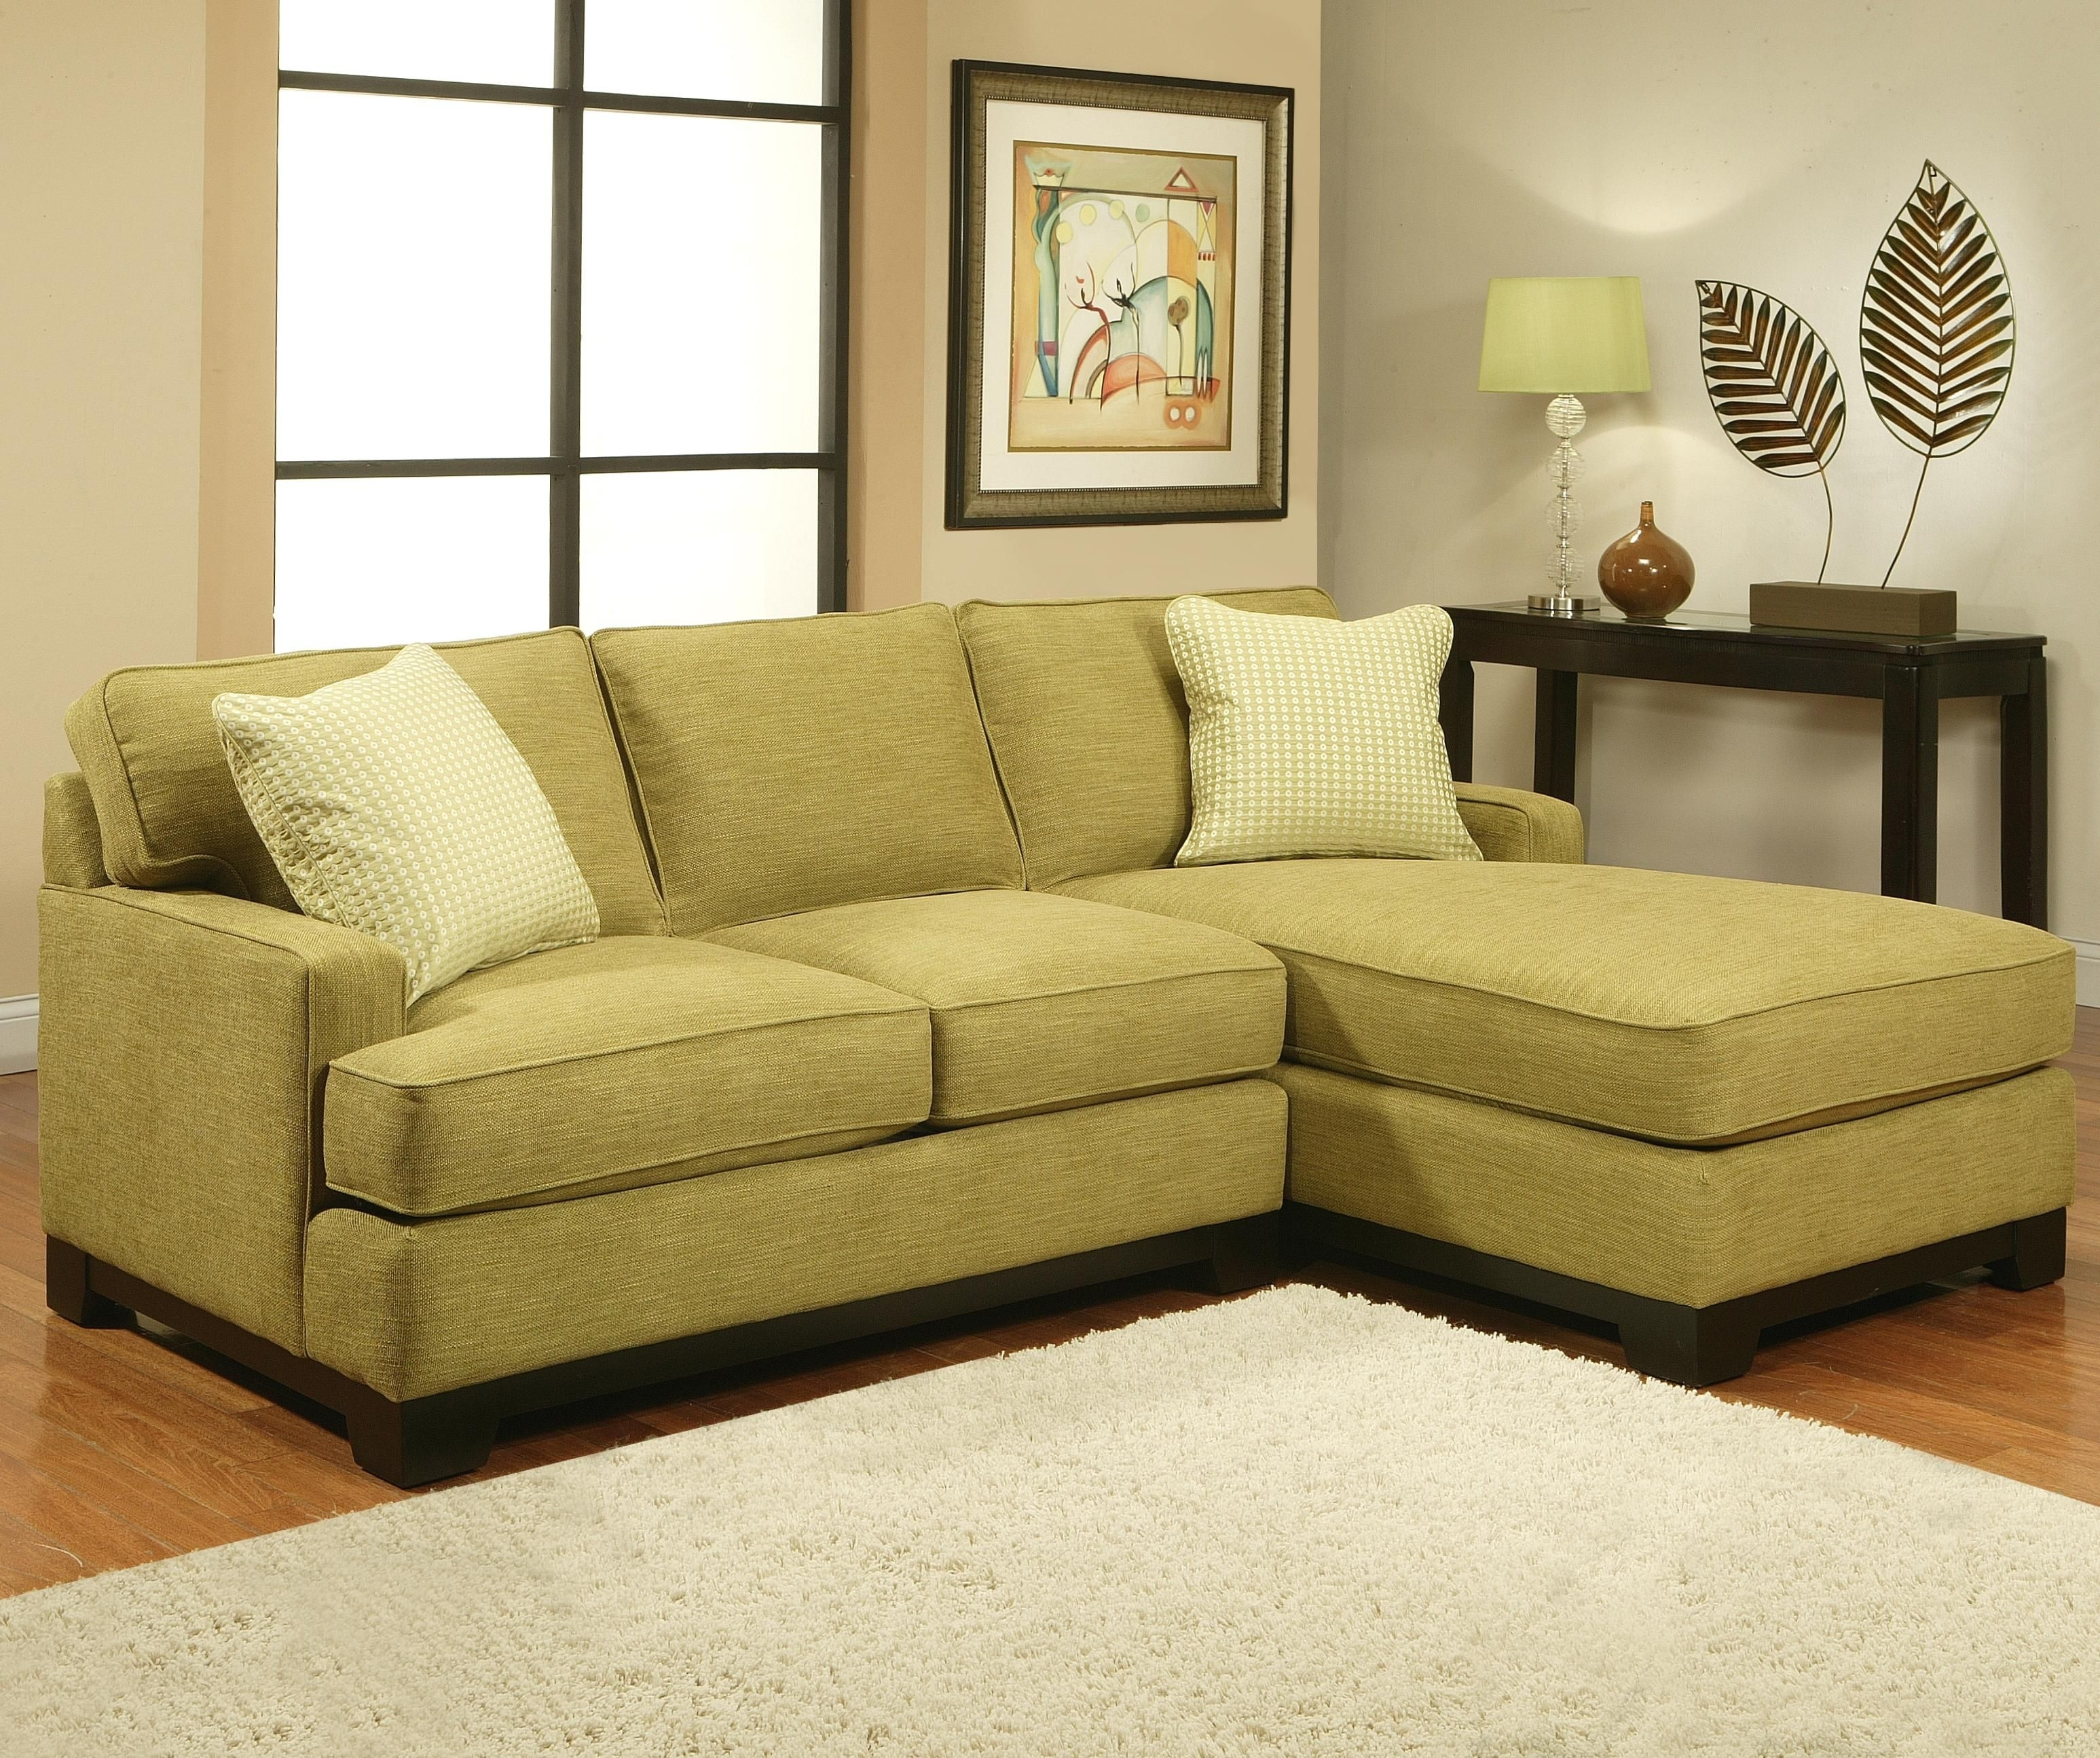 Choices – Kronos Contemporary Sectional Sofa With Track Arms With Regard To Nova Scotia Sectional Sofas (View 4 of 10)